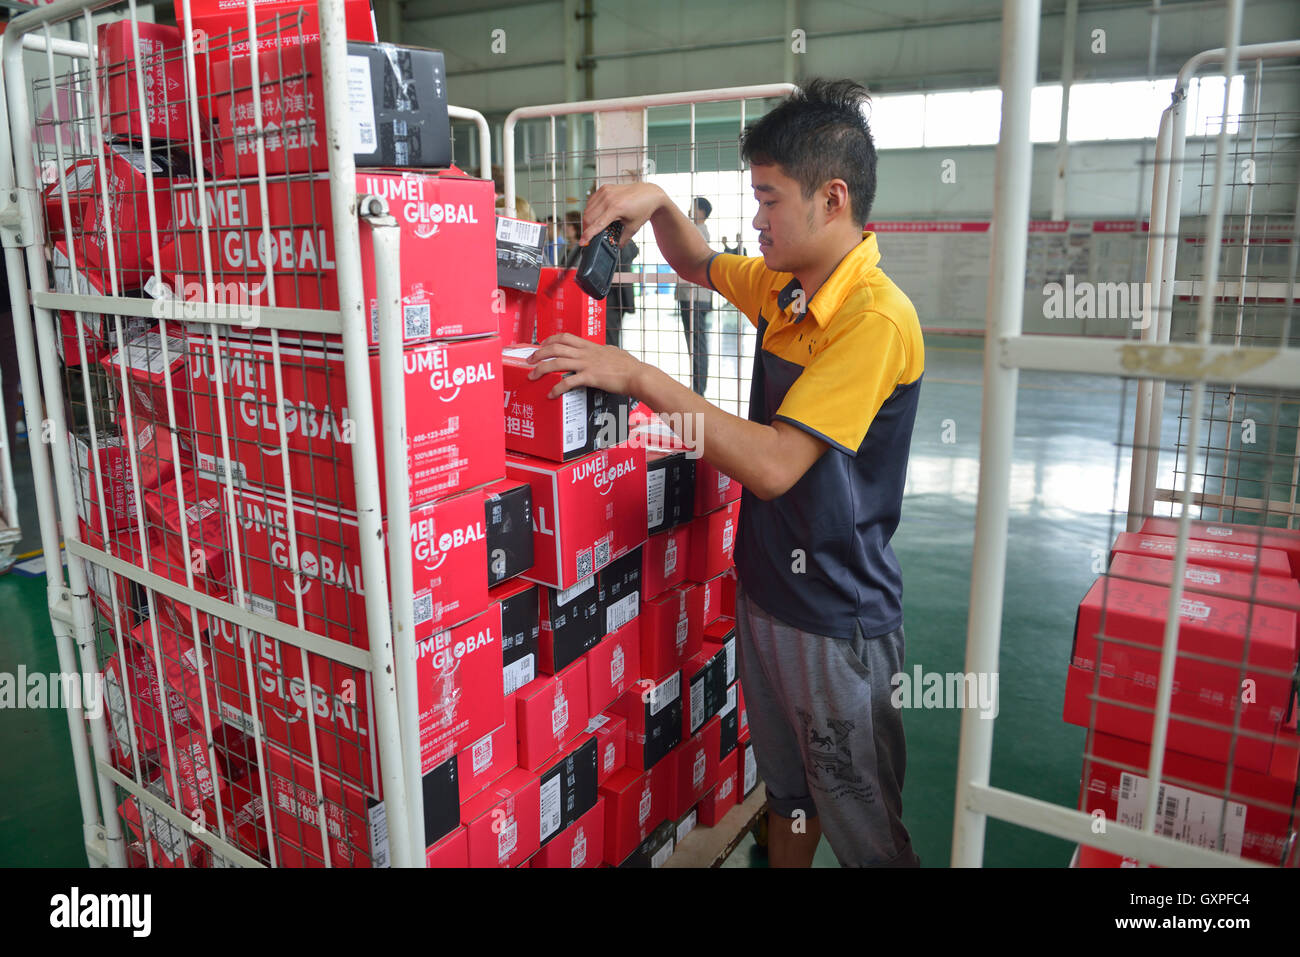 Staff checks goods shopped from overseas through Jumei Global online channel during delivery at EHL International - Stock Image